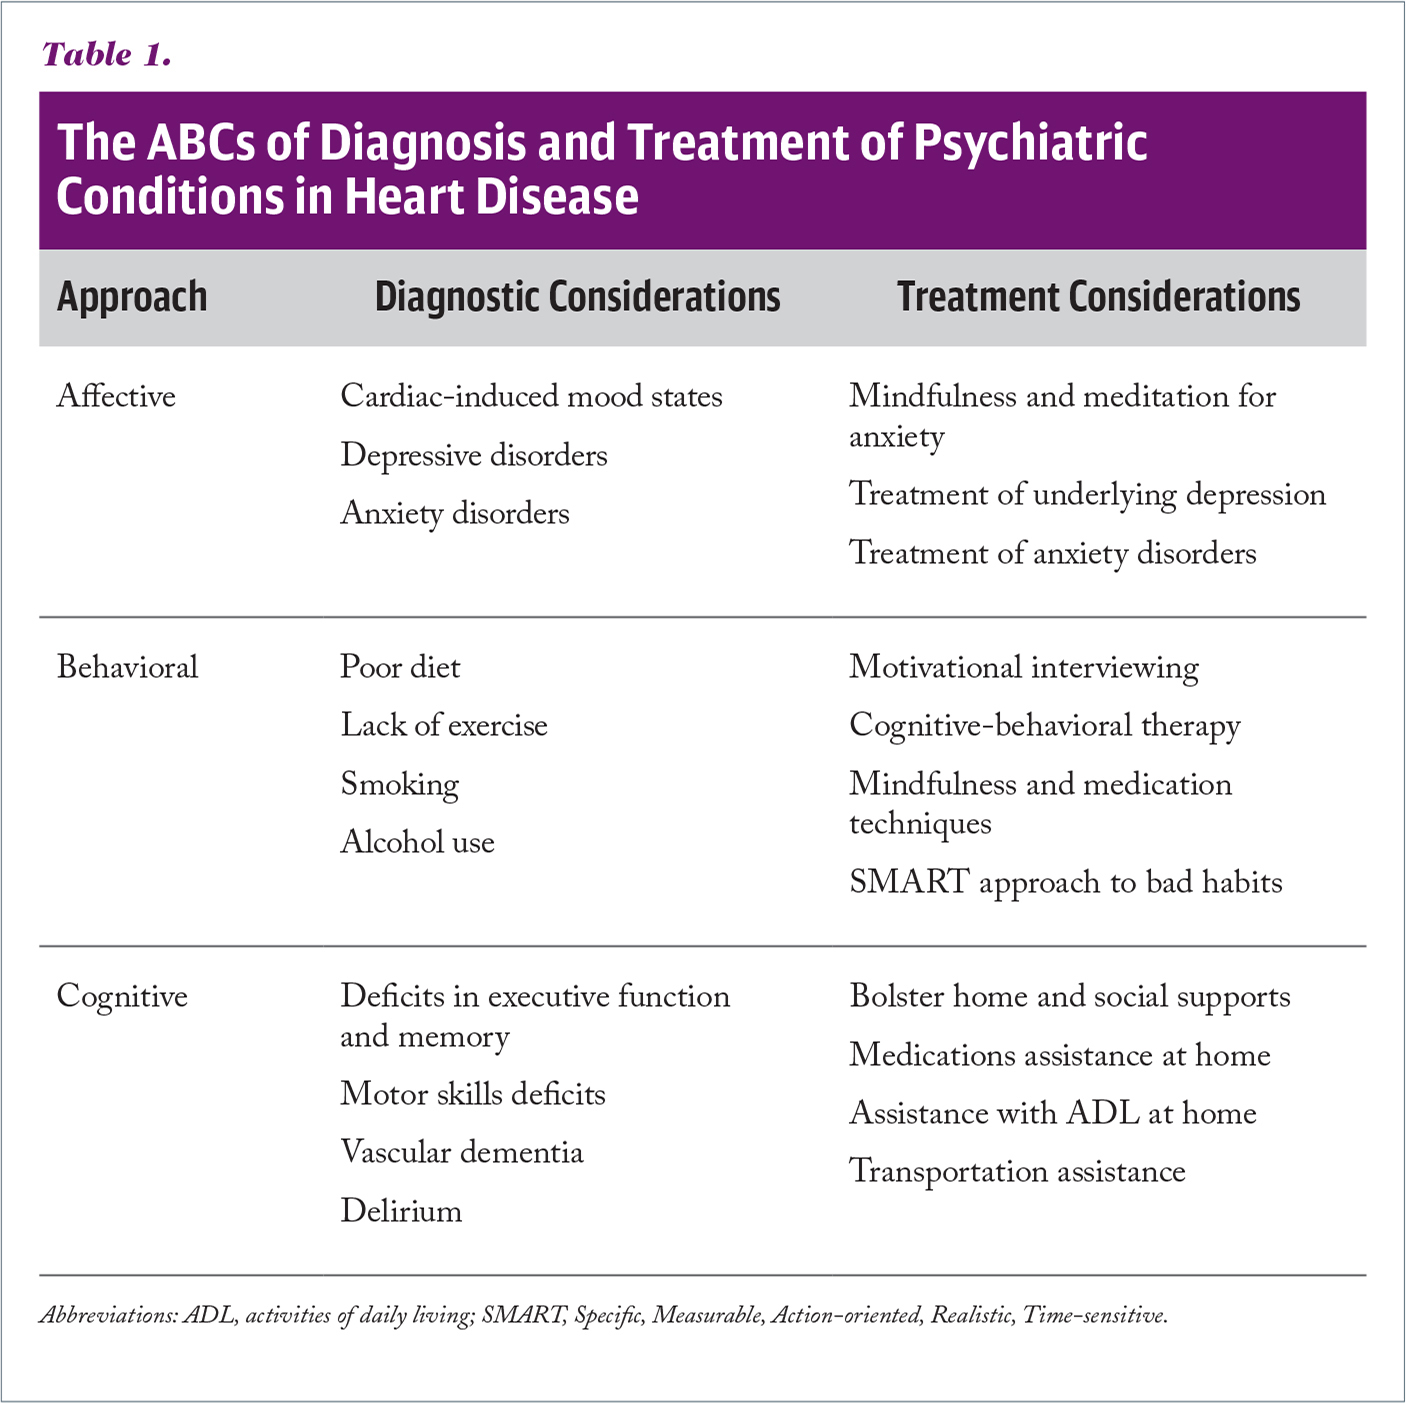 The ABCs of Diagnosis and Treatment of Psychiatric Conditions in Heart Disease